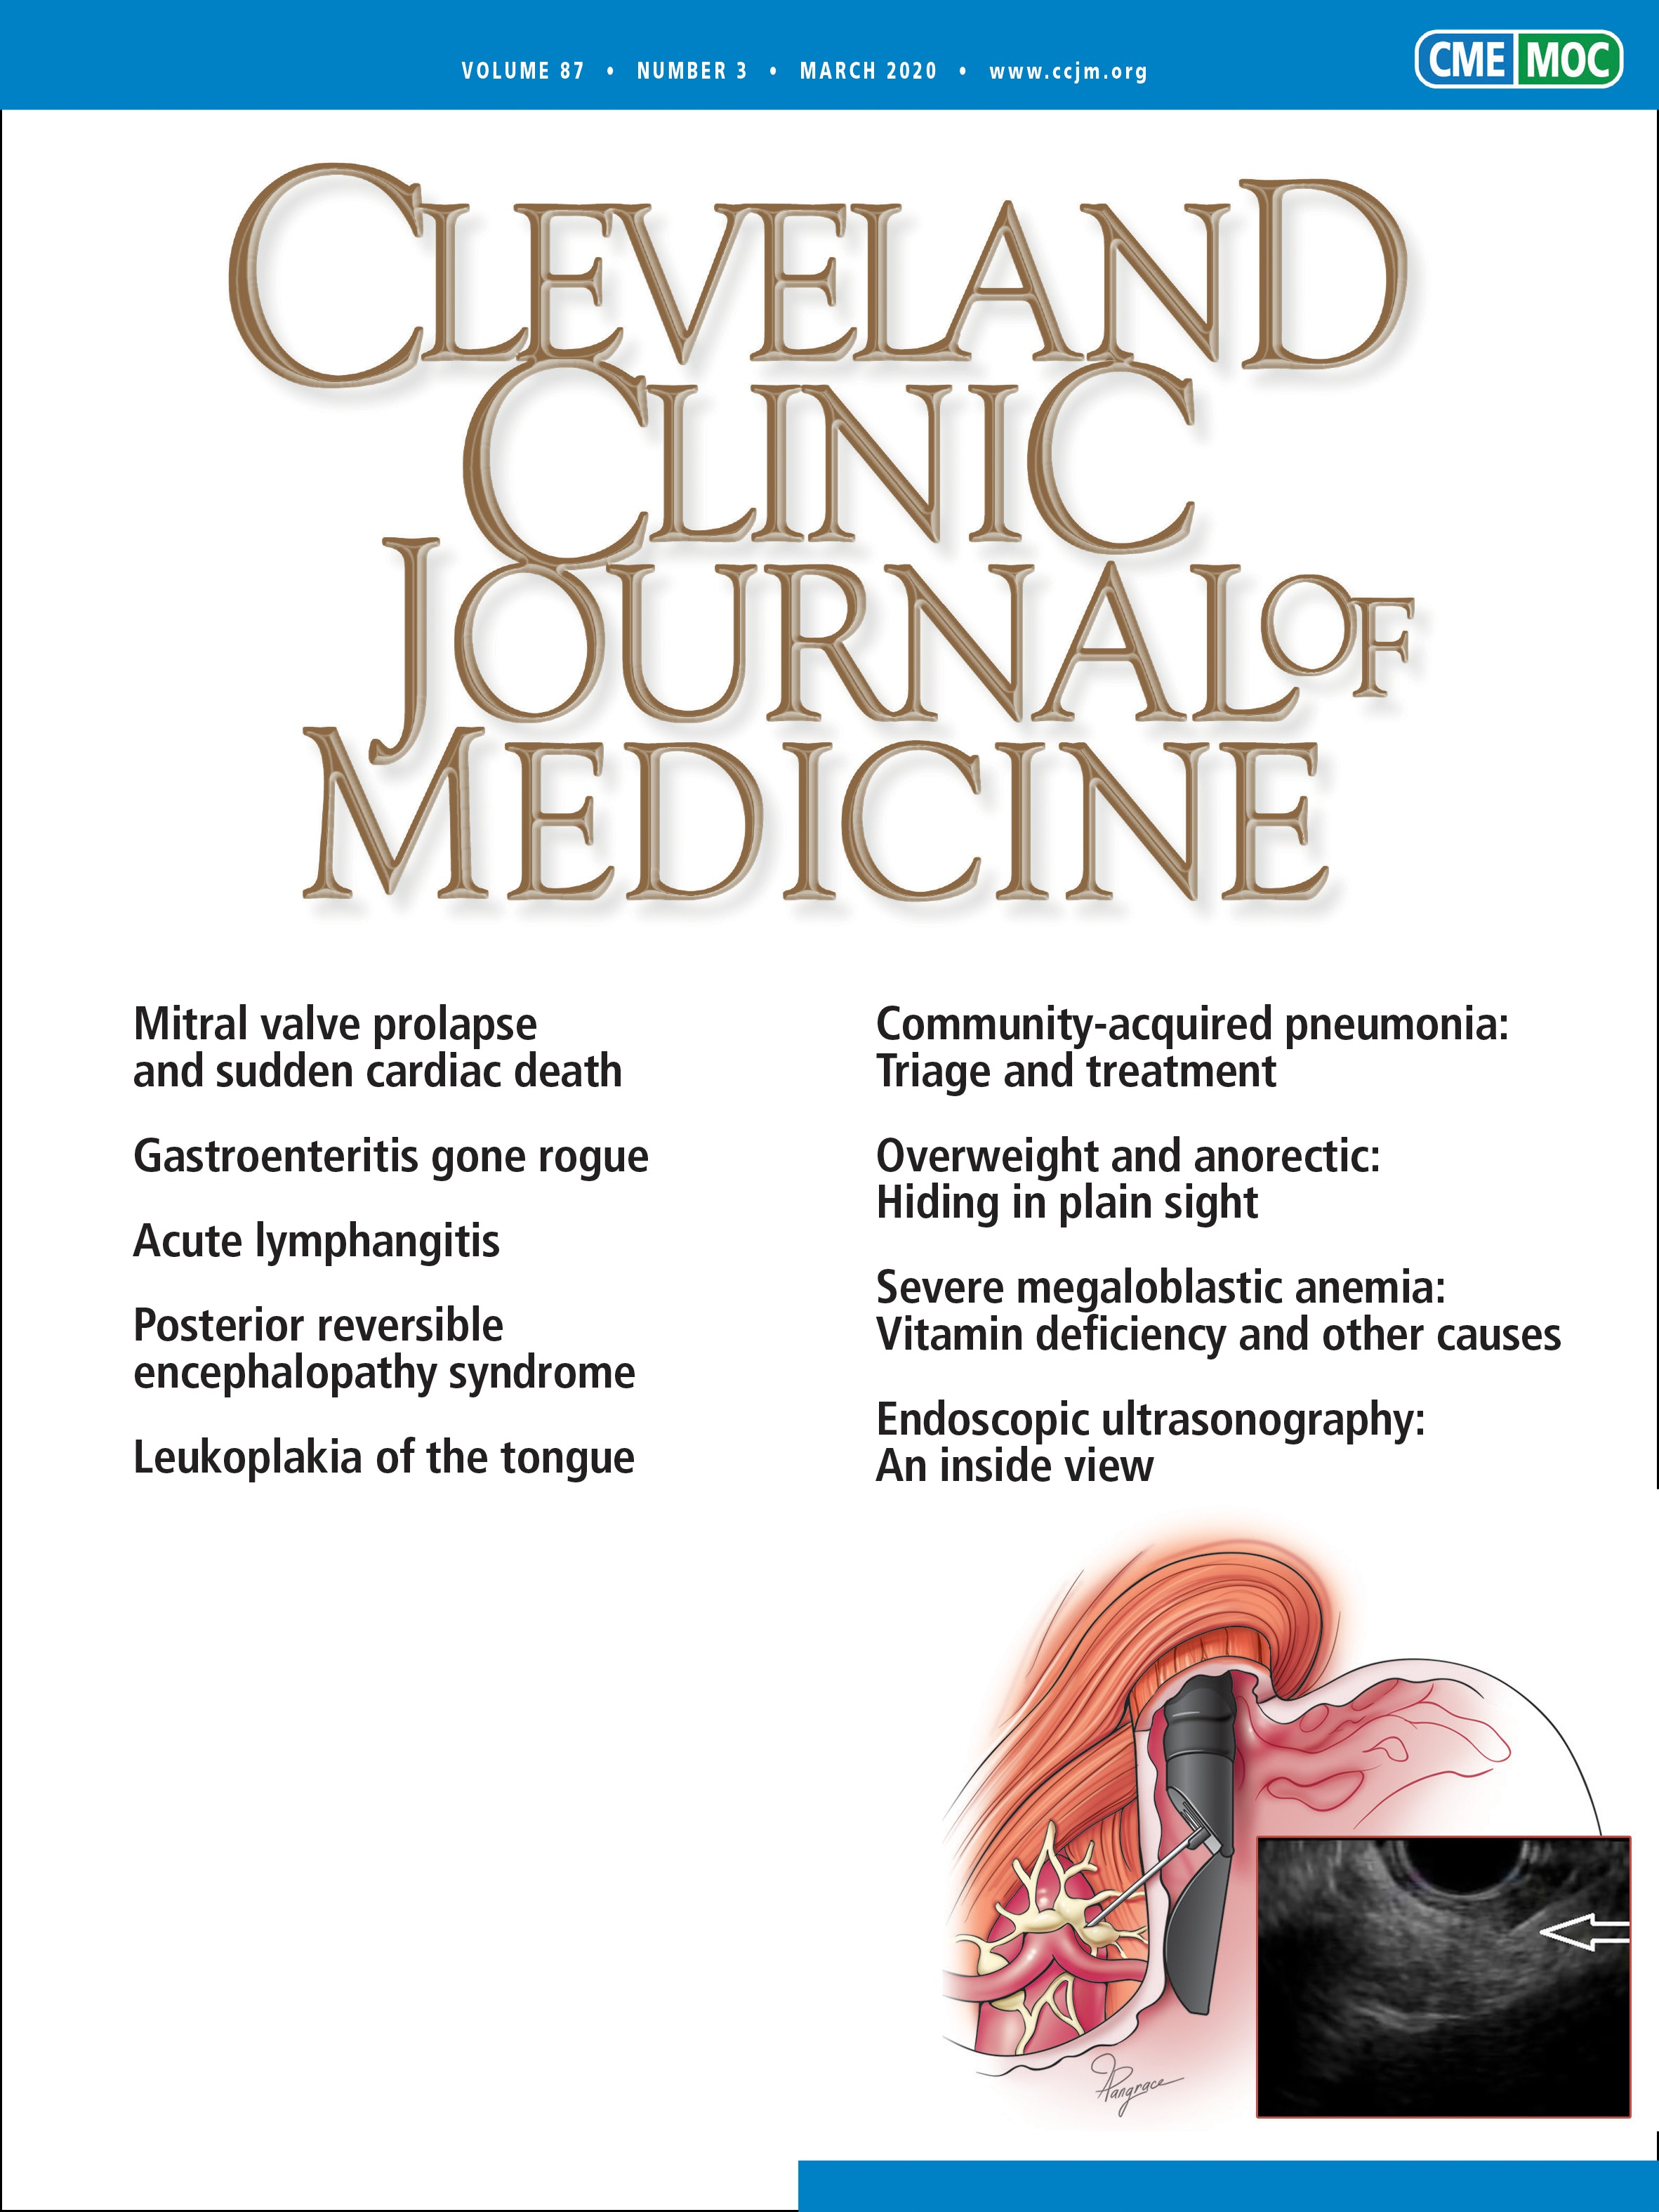 Restrictive Eating Disorders In Previously Overweight Adolescents And Young Adults Cleveland Clinic Journal Of Medicine